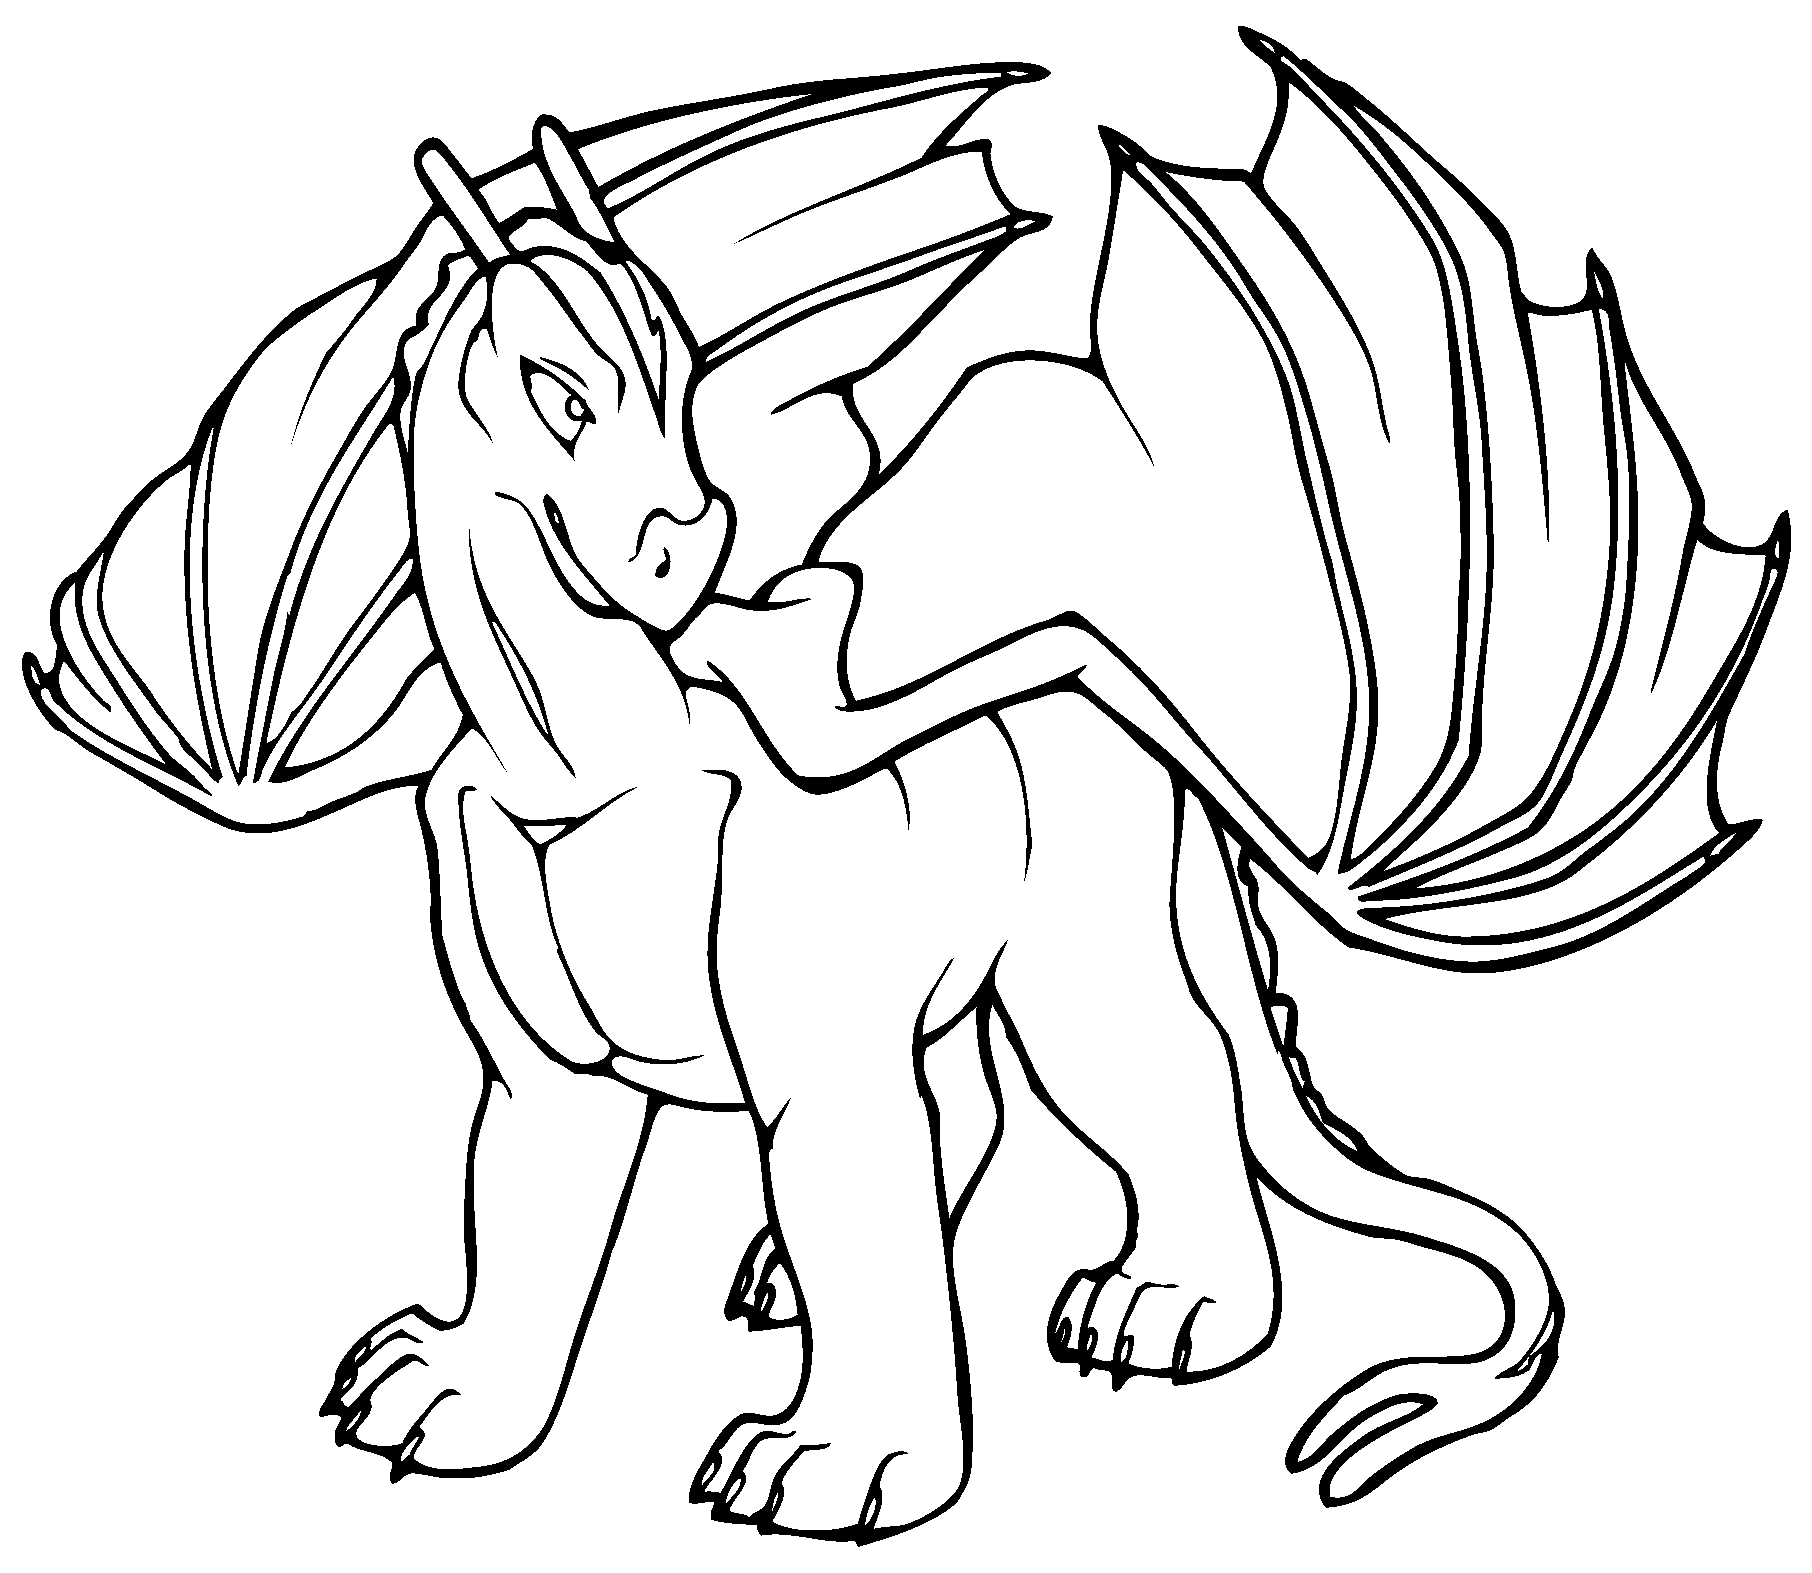 Free Printable Dragon Coloring Pages For Kids | Places to Visit ...